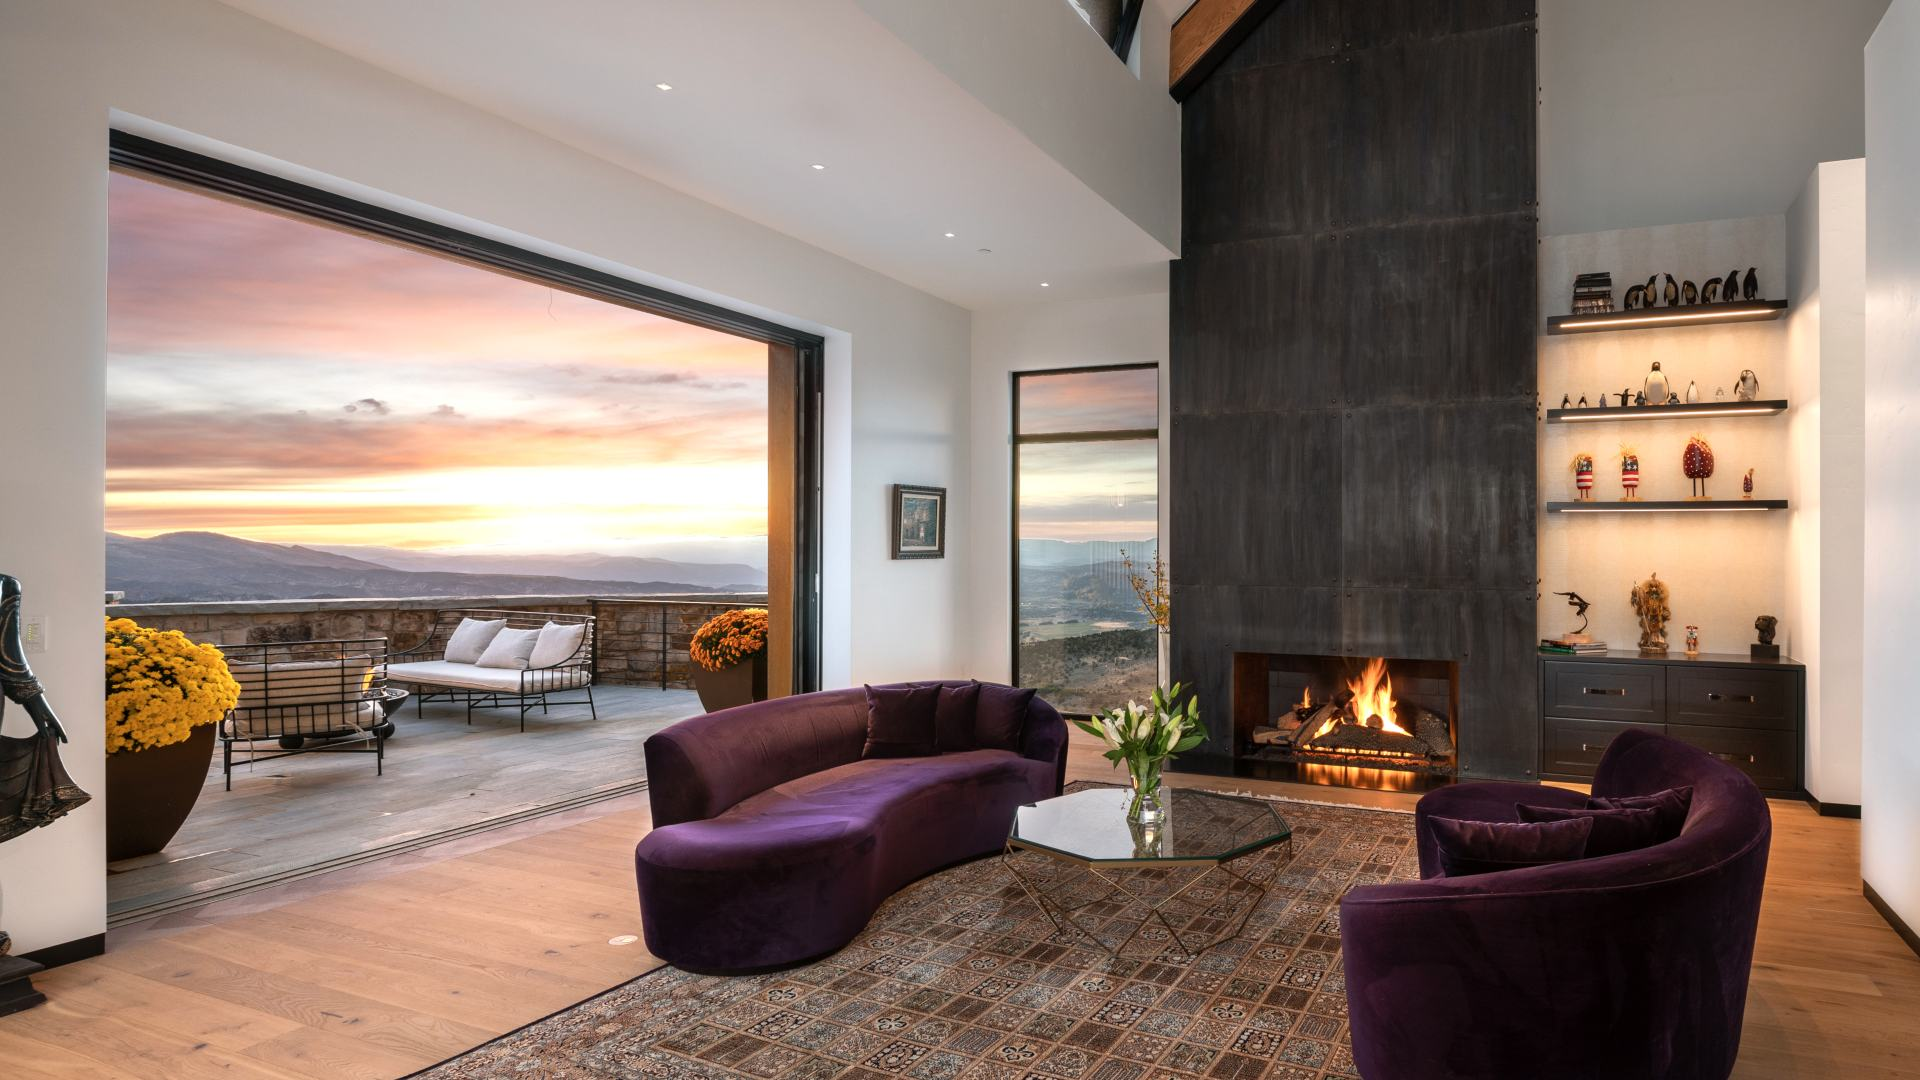 Modern living room with outdoor patio overlooking mountains.